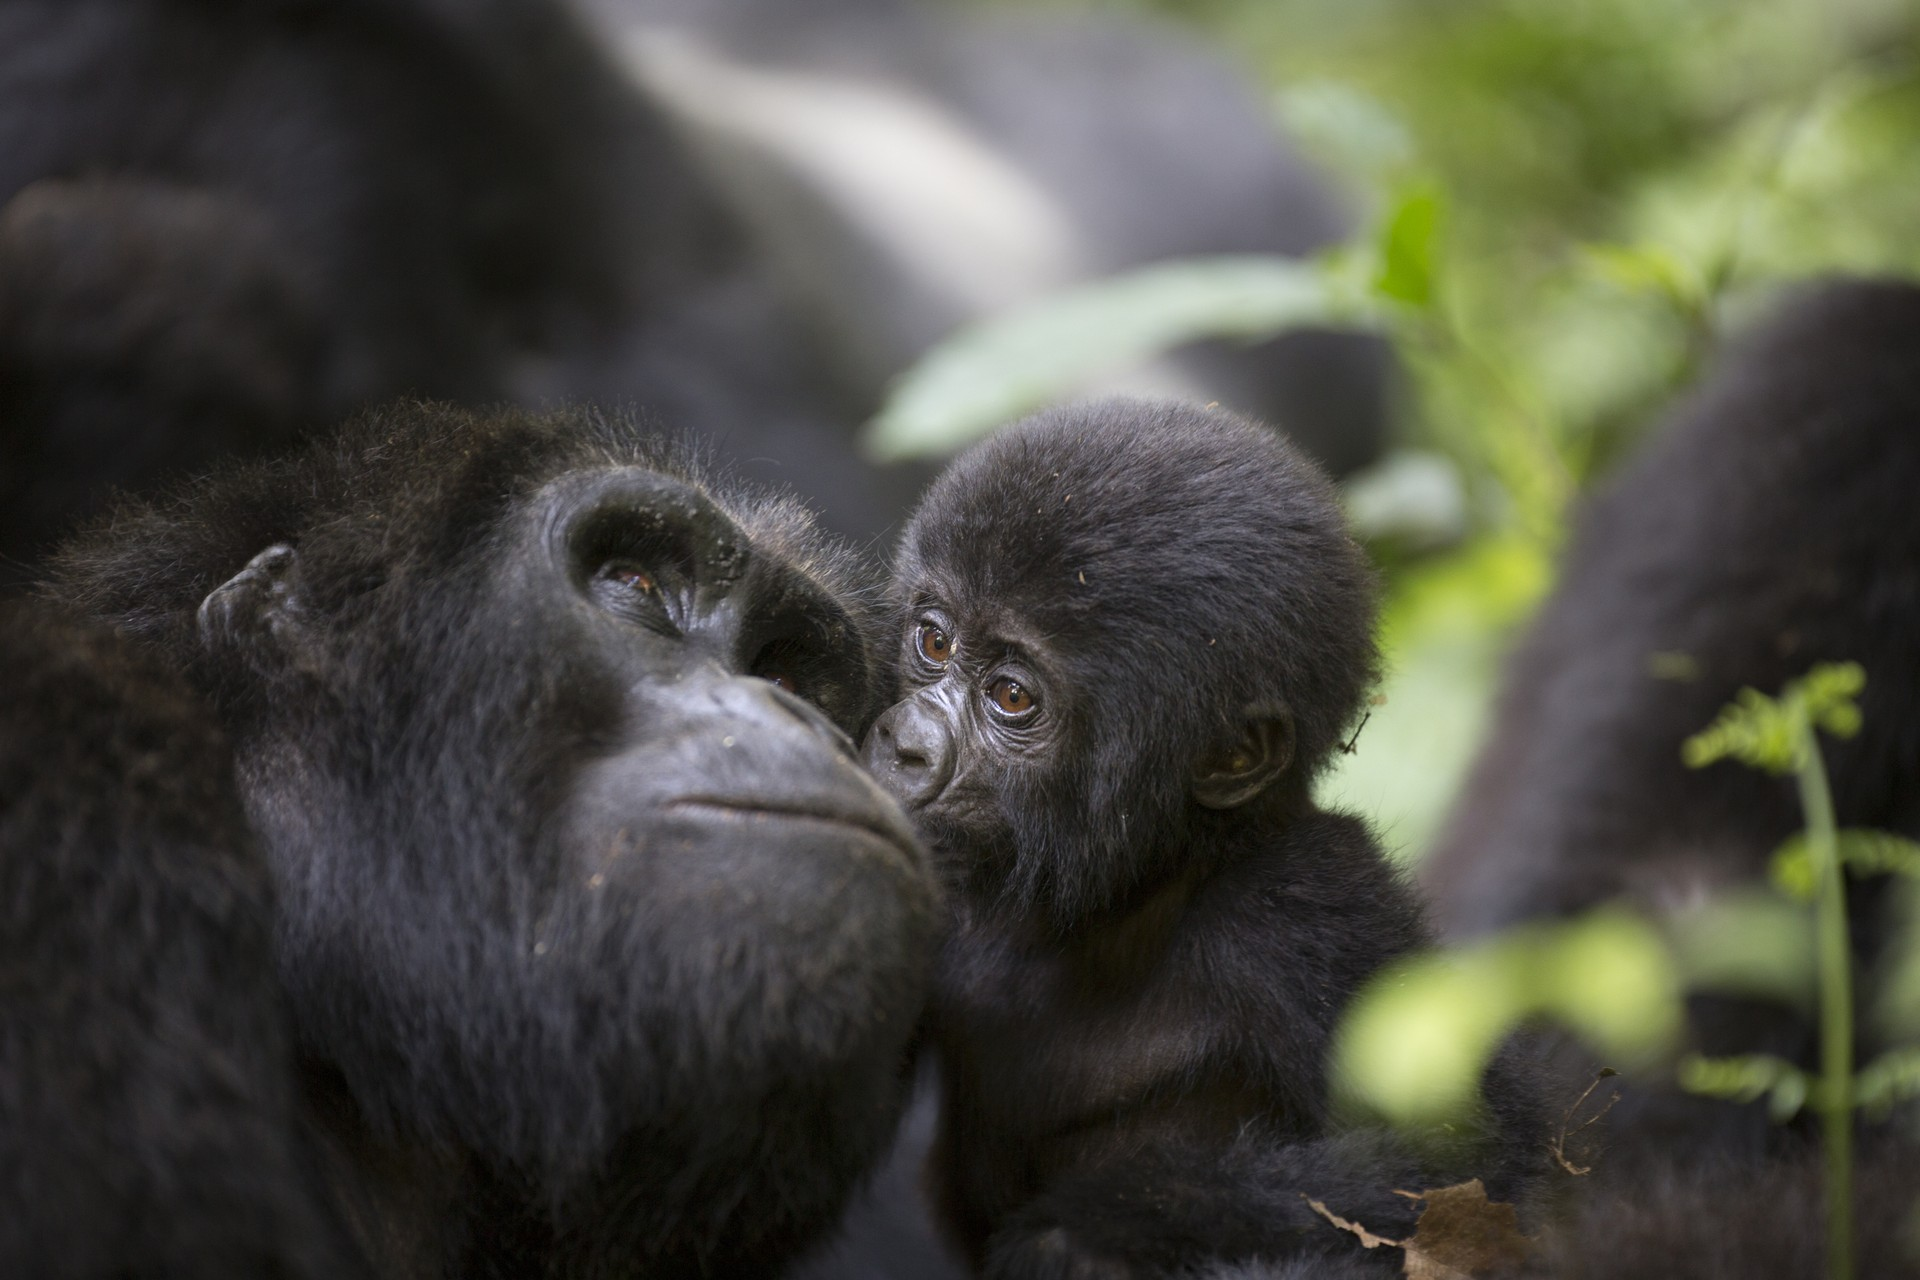 A mother and baby gorilla in Rwanda